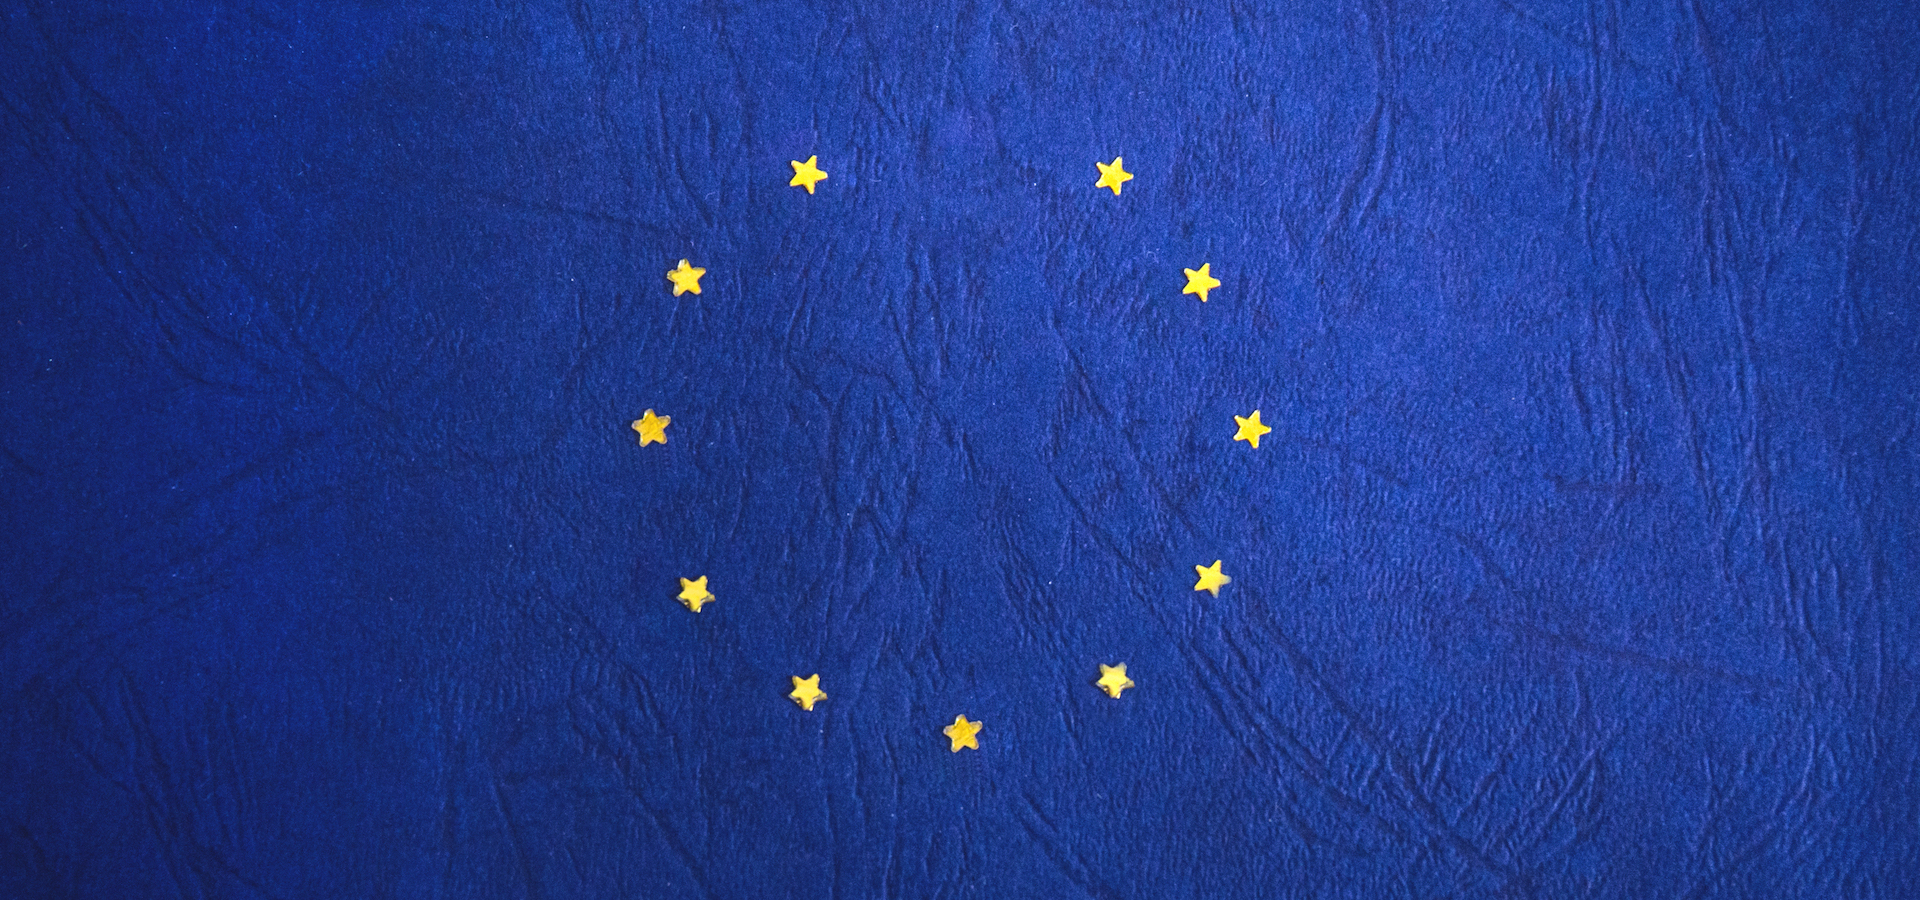 Brexit EU flag missing one star